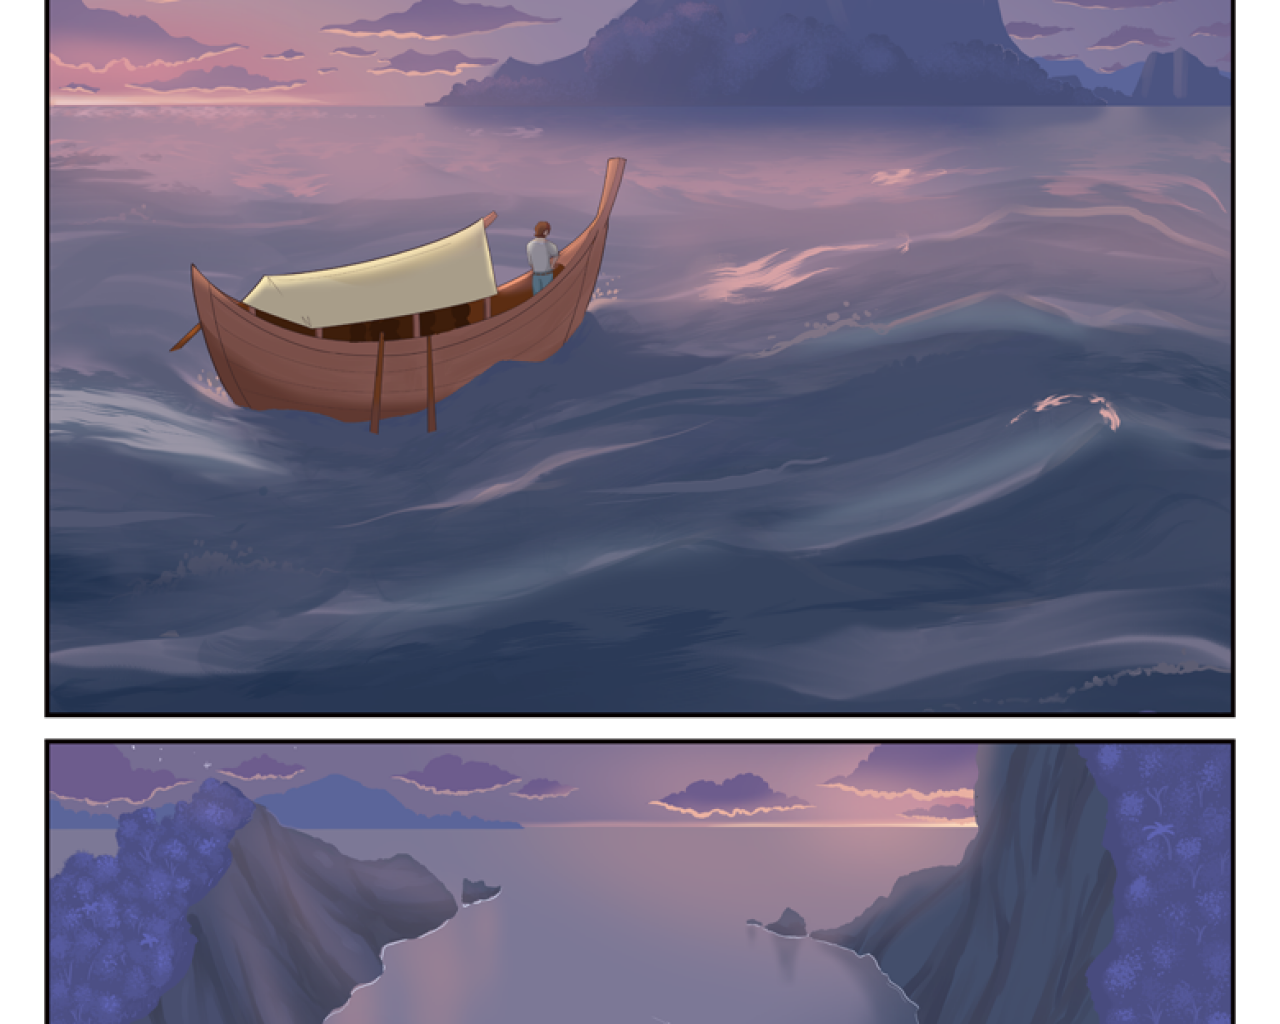 Preview Image 1 for Wukrii - A Fantasy Adventure